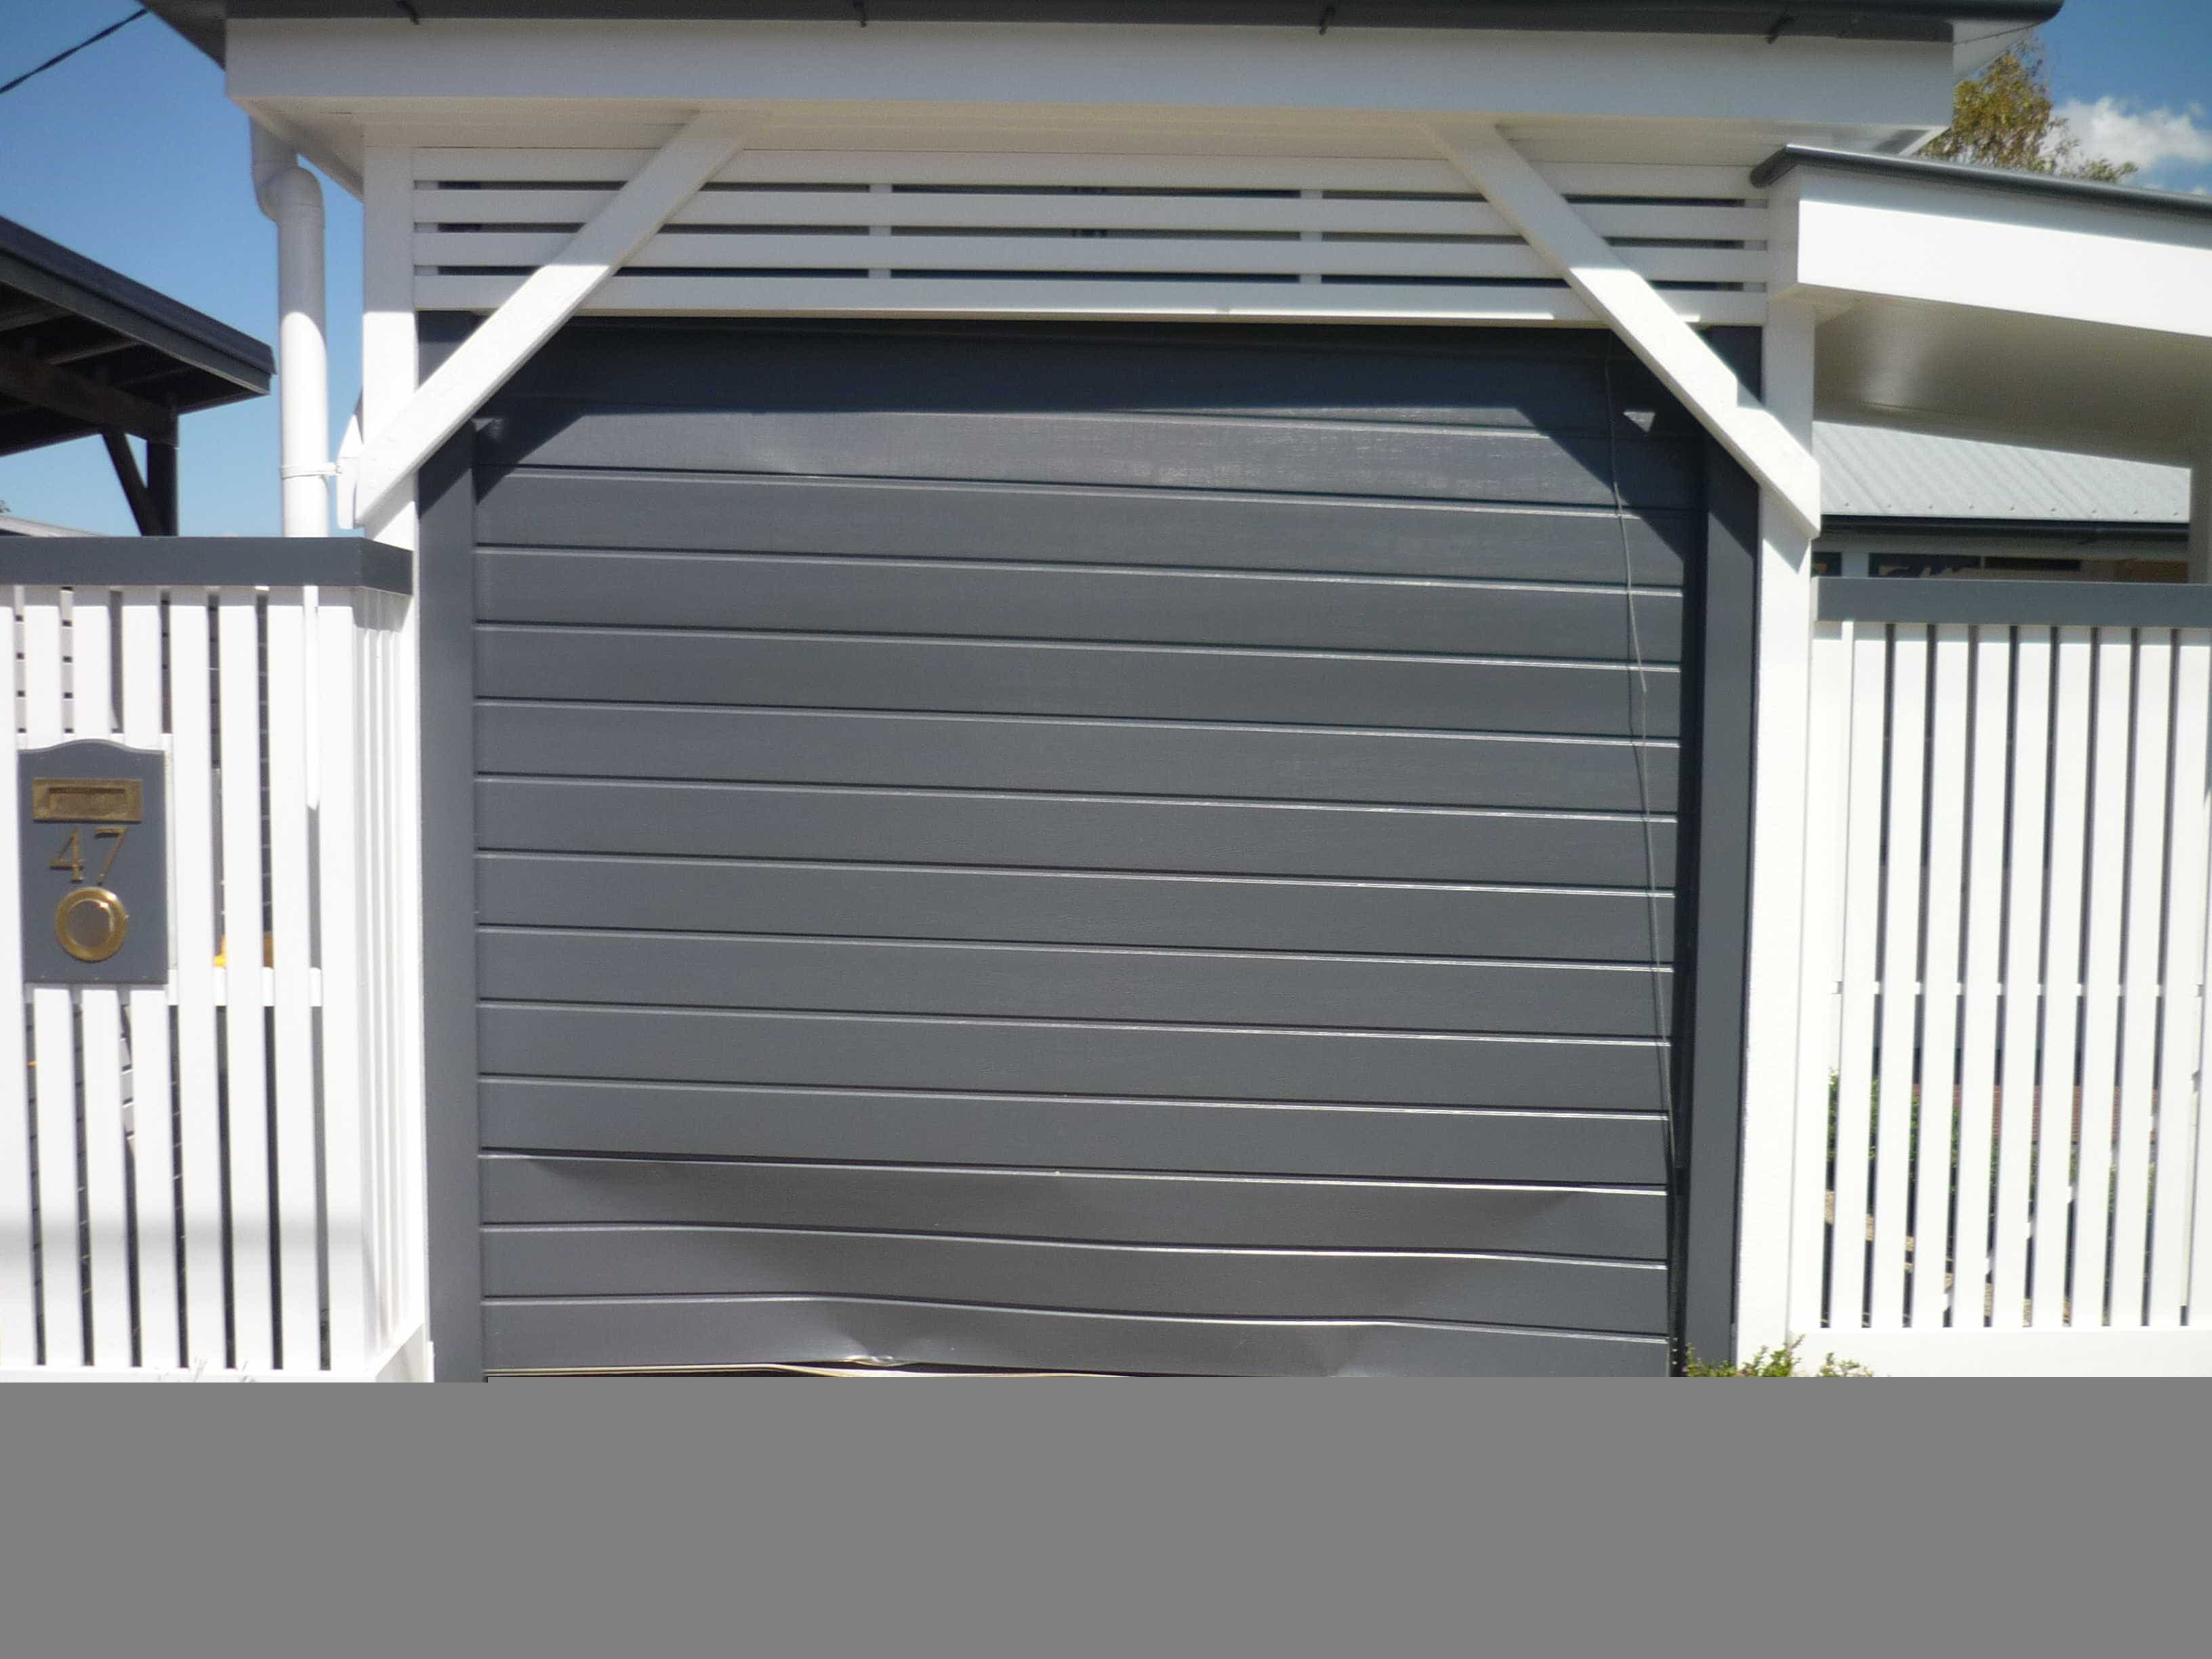 2448 #3E6C8D Garage Door Spring Repair Doors Direct image Overhead Doors Direct 38433264